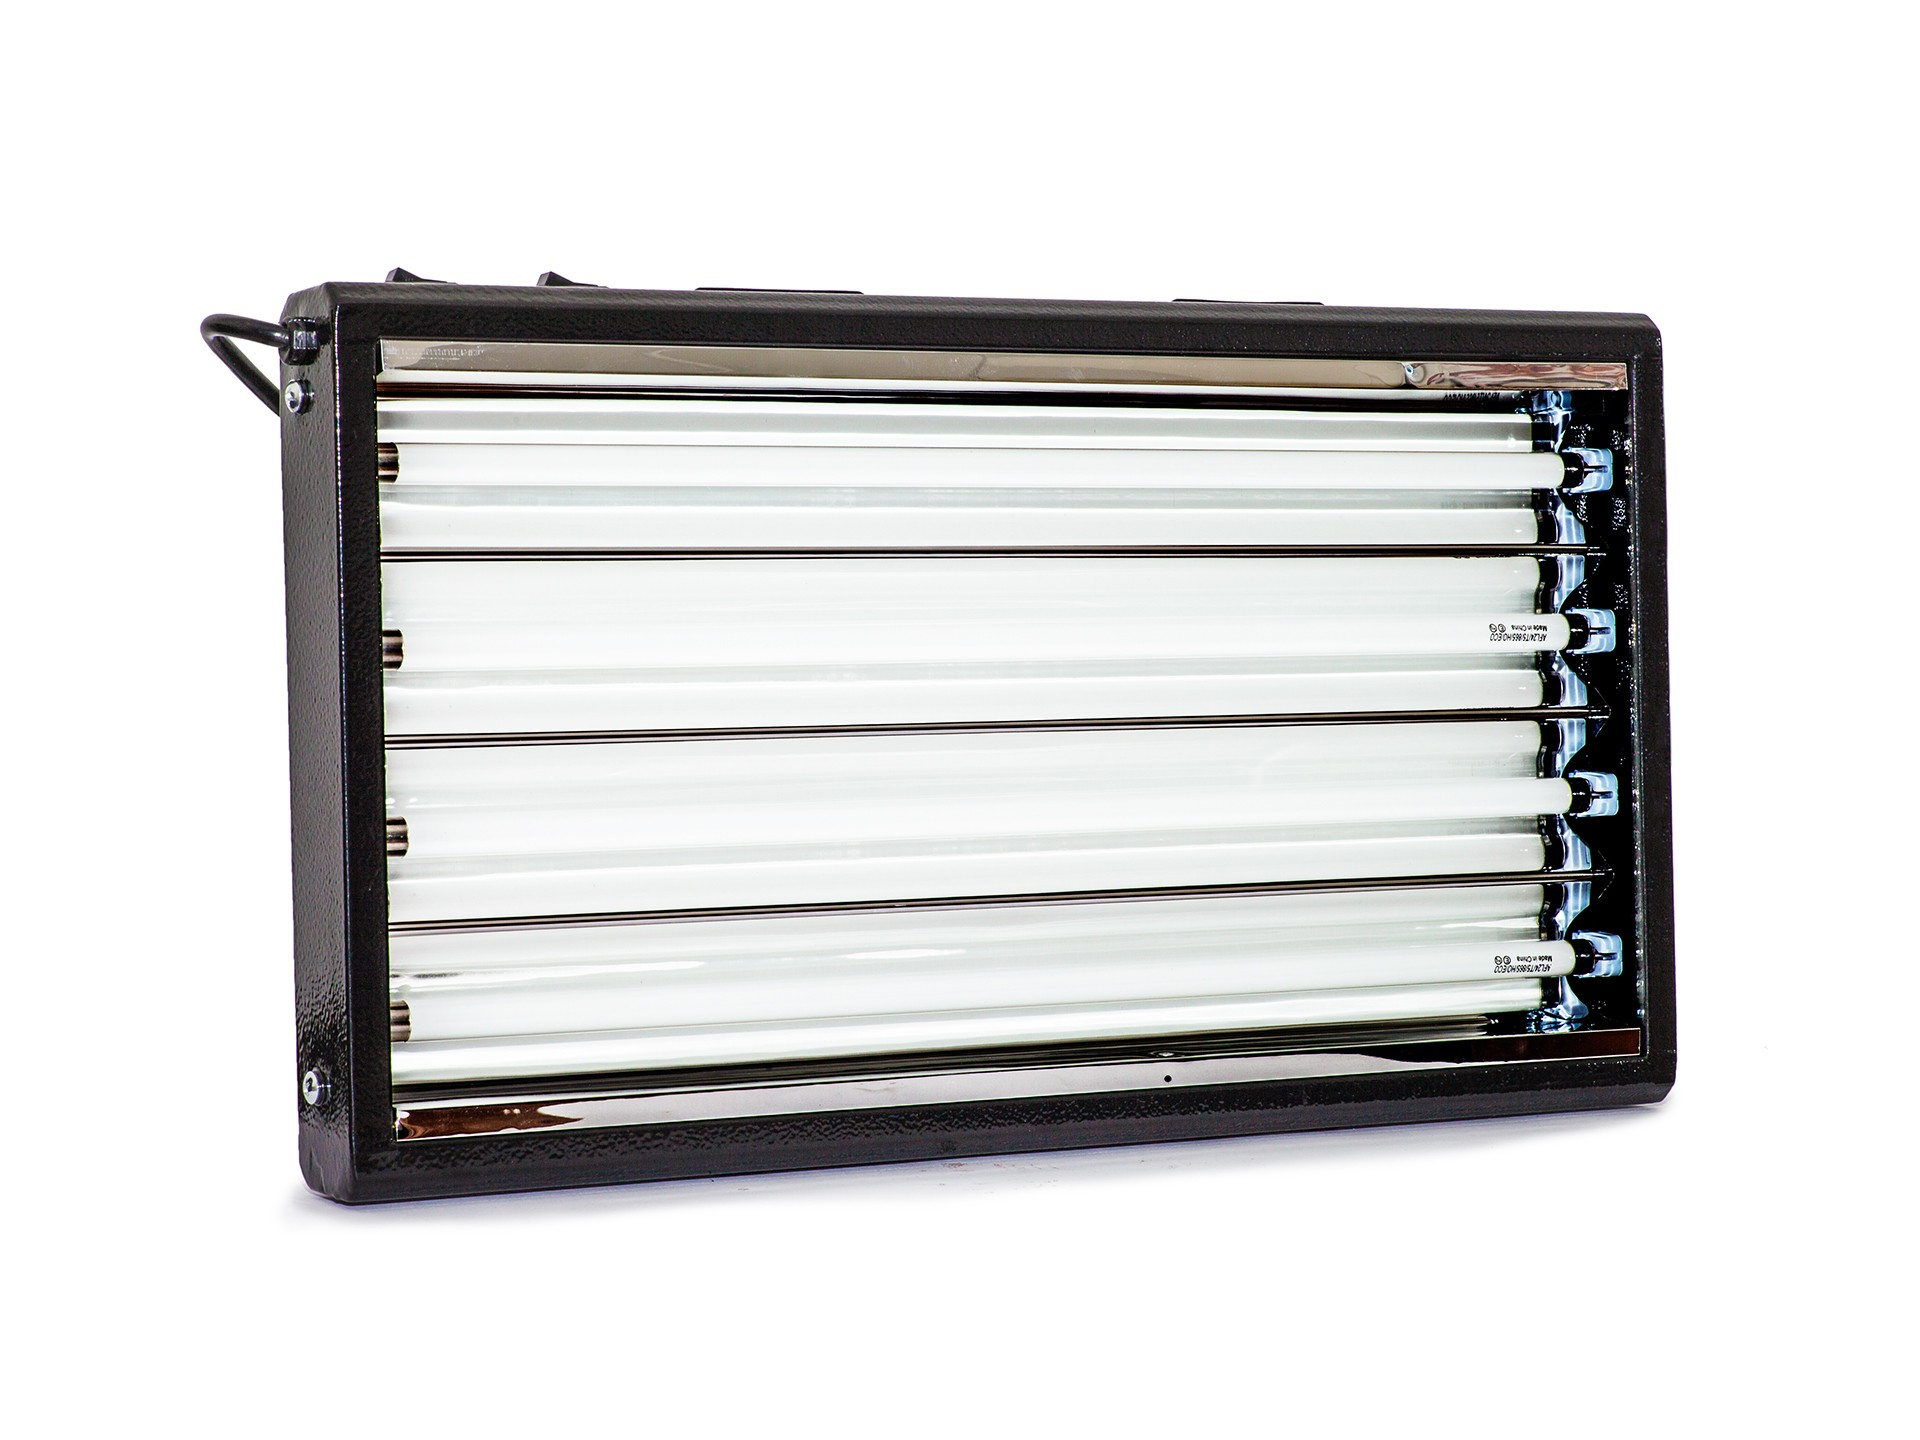 T5 Pulsar Fluorescent Lighting